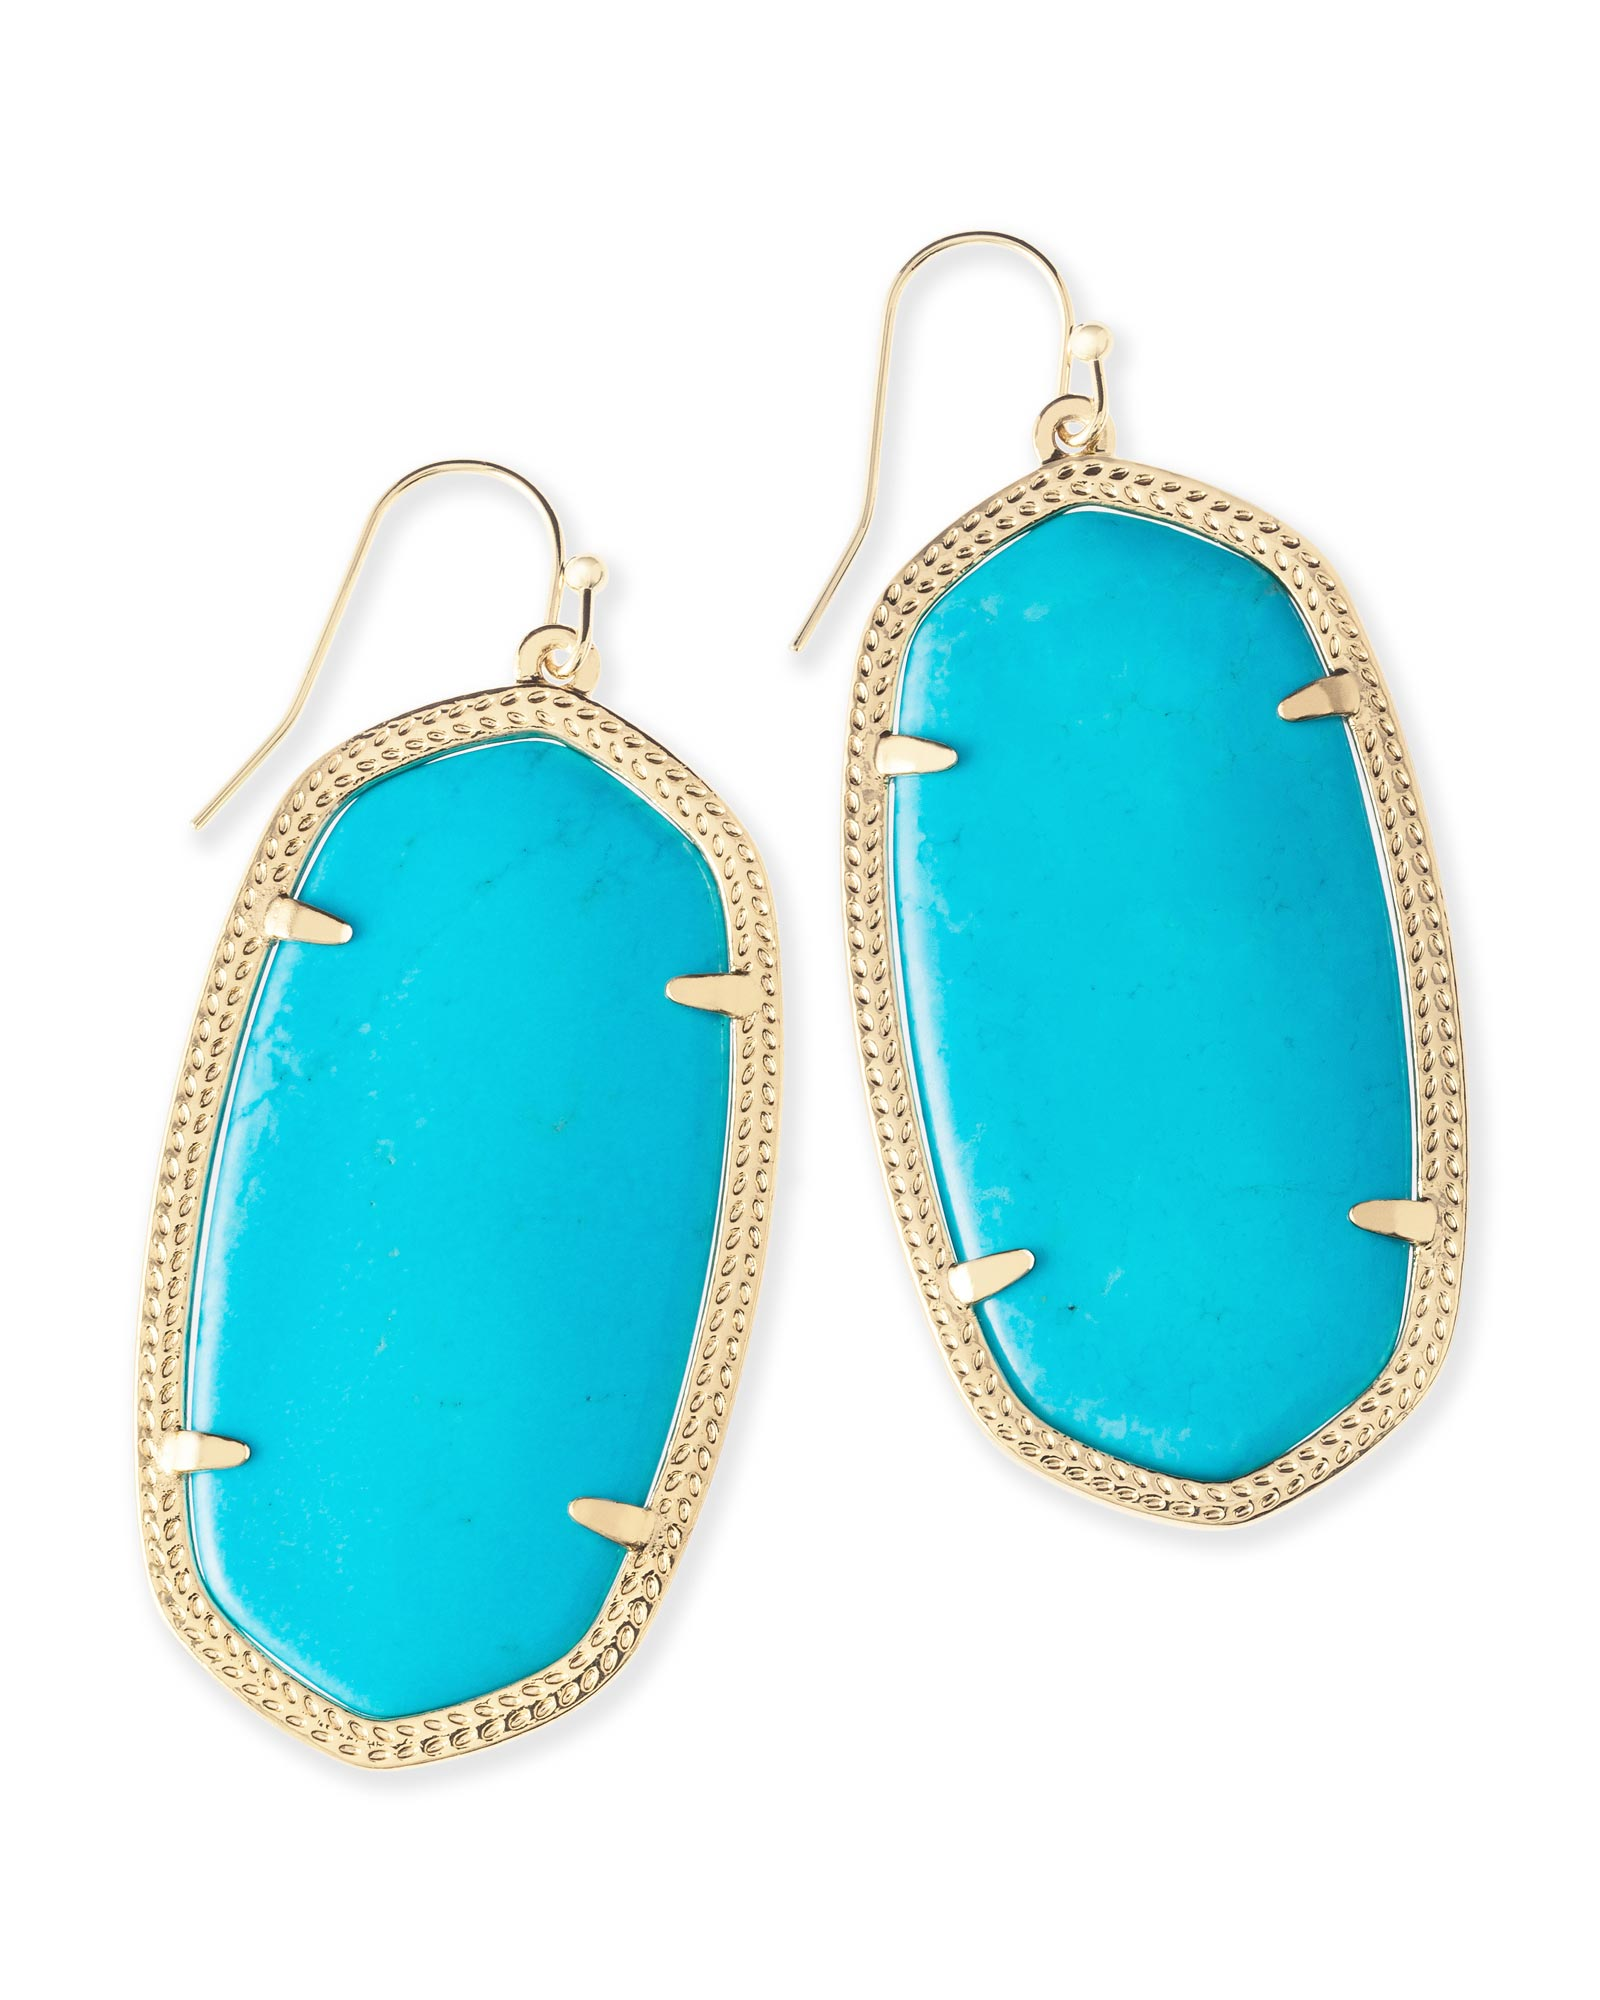 Danielle Gold Statement Earrings in Turquoise